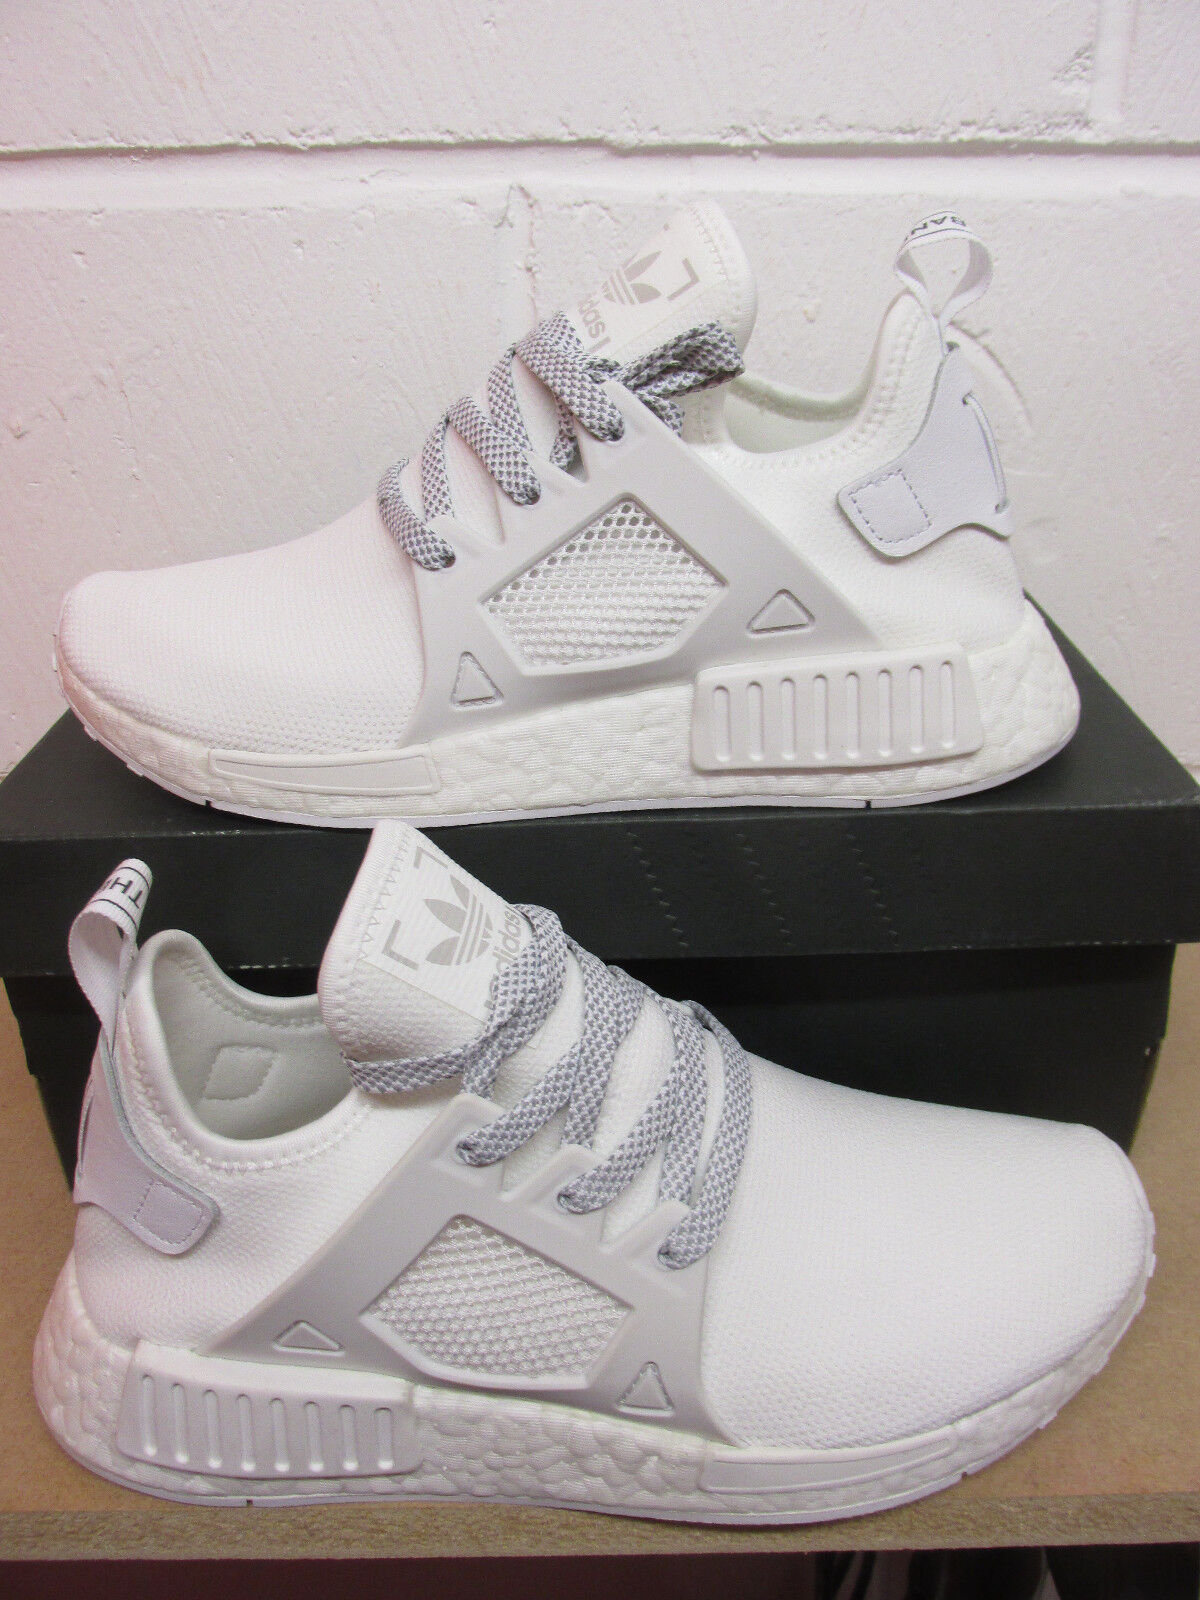 Adidas Originals NMD_XR1 Mens Running Trainers BY3052 Sneakers Shoes best-selling model of the brand